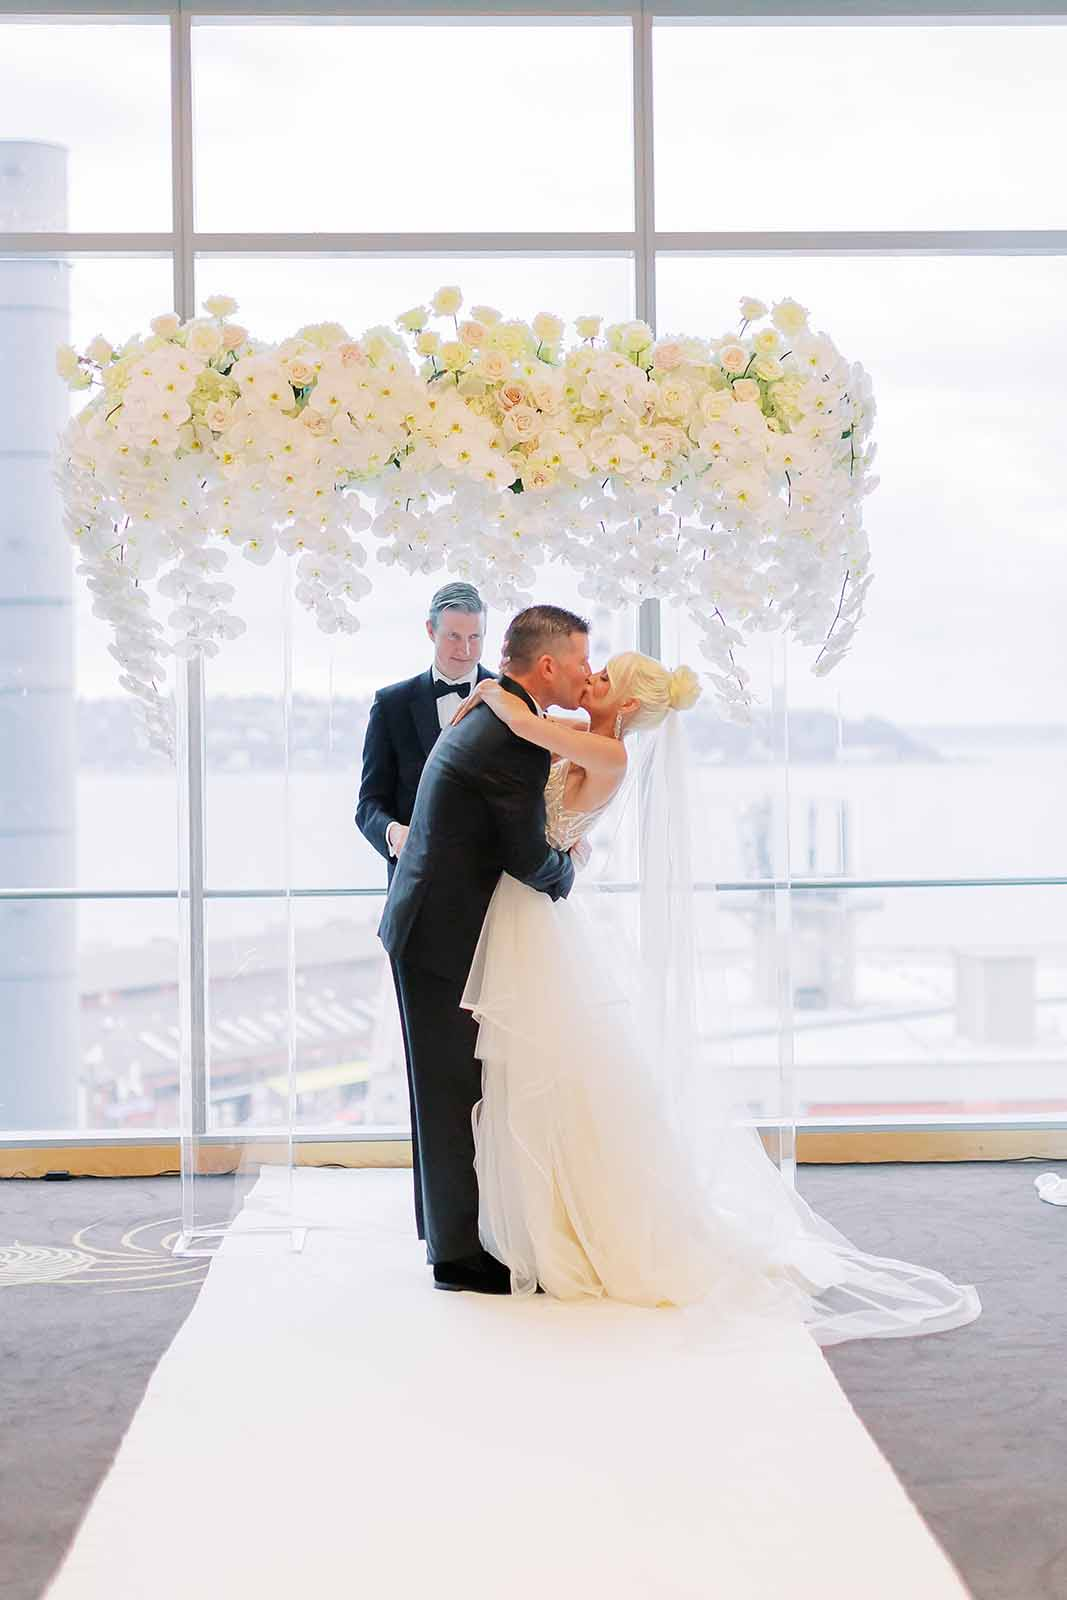 Bride and Groom kissing in front of a white floral arch covered in orchids during their formal ballroom wedding ceremony